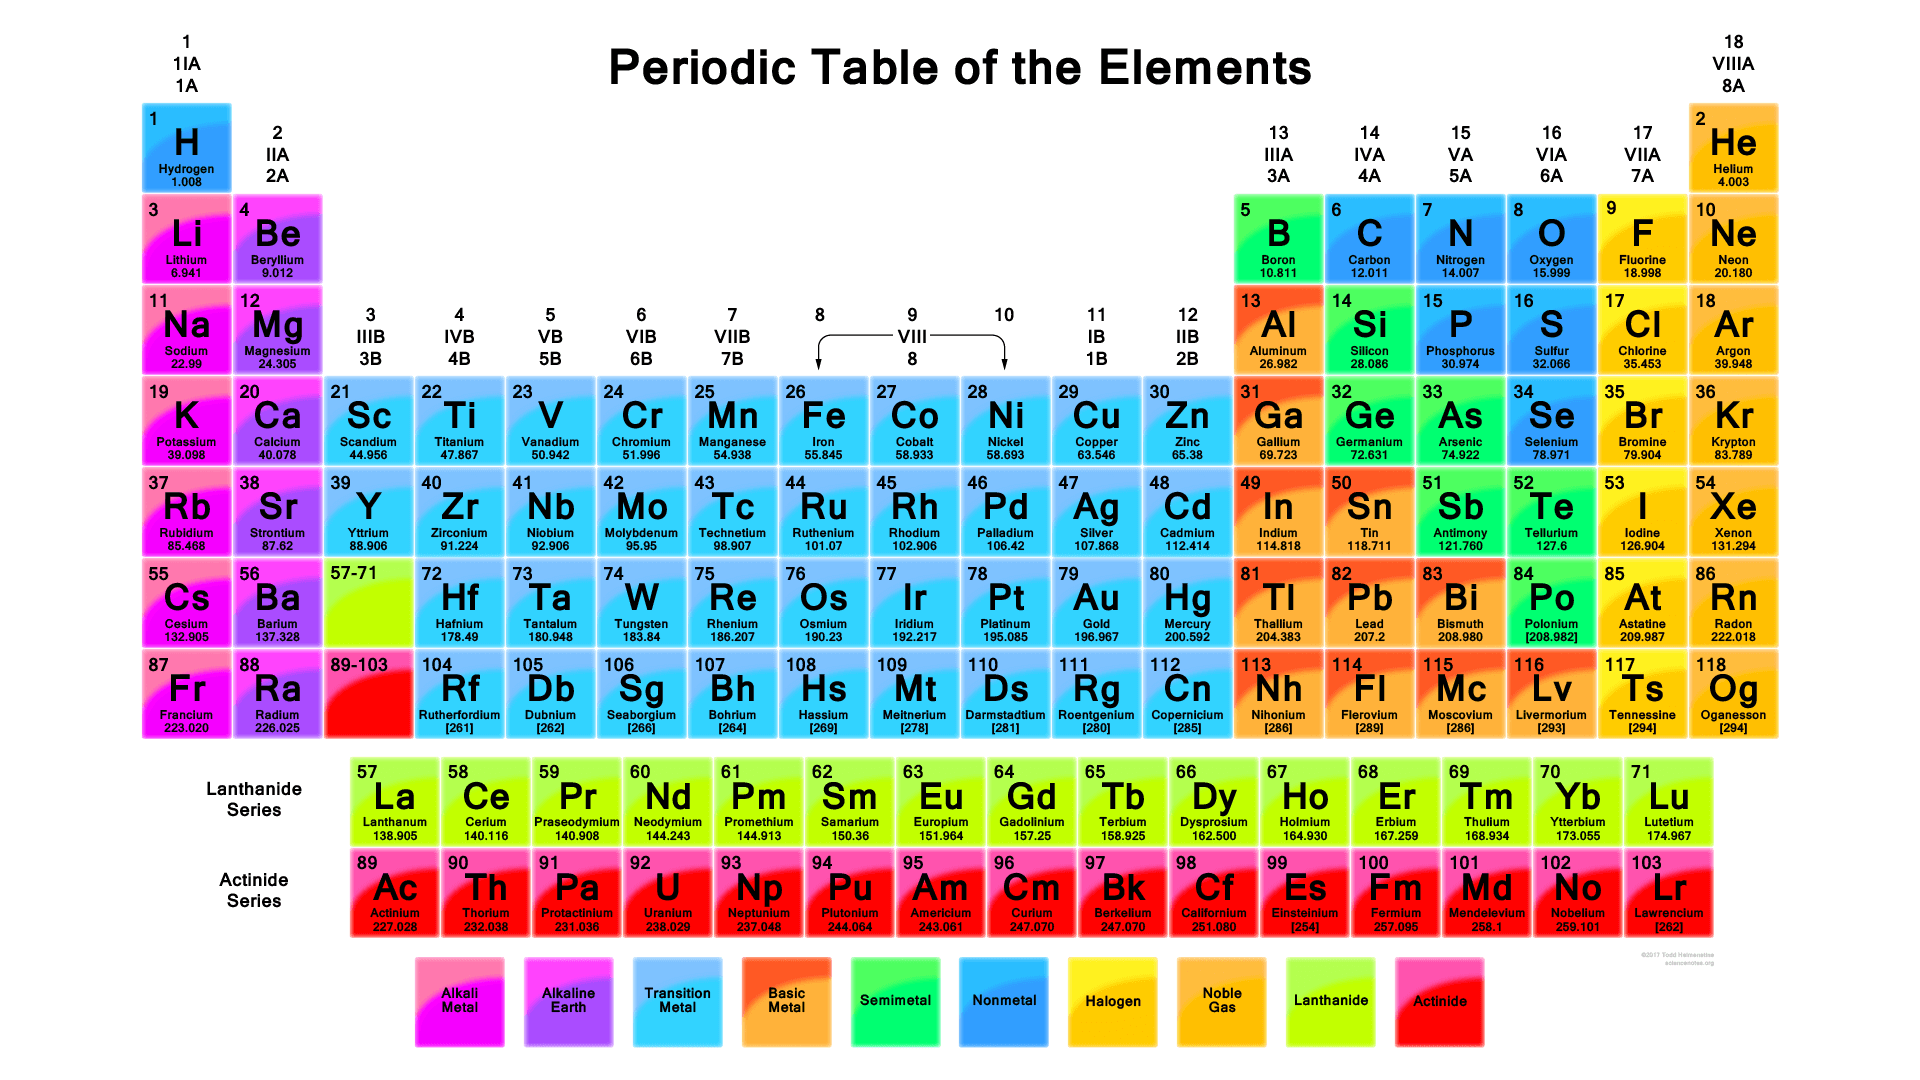 Periodic table pdf 2018 edition with 118 elements vibrant periodic table with 118 elements biocorpaavc